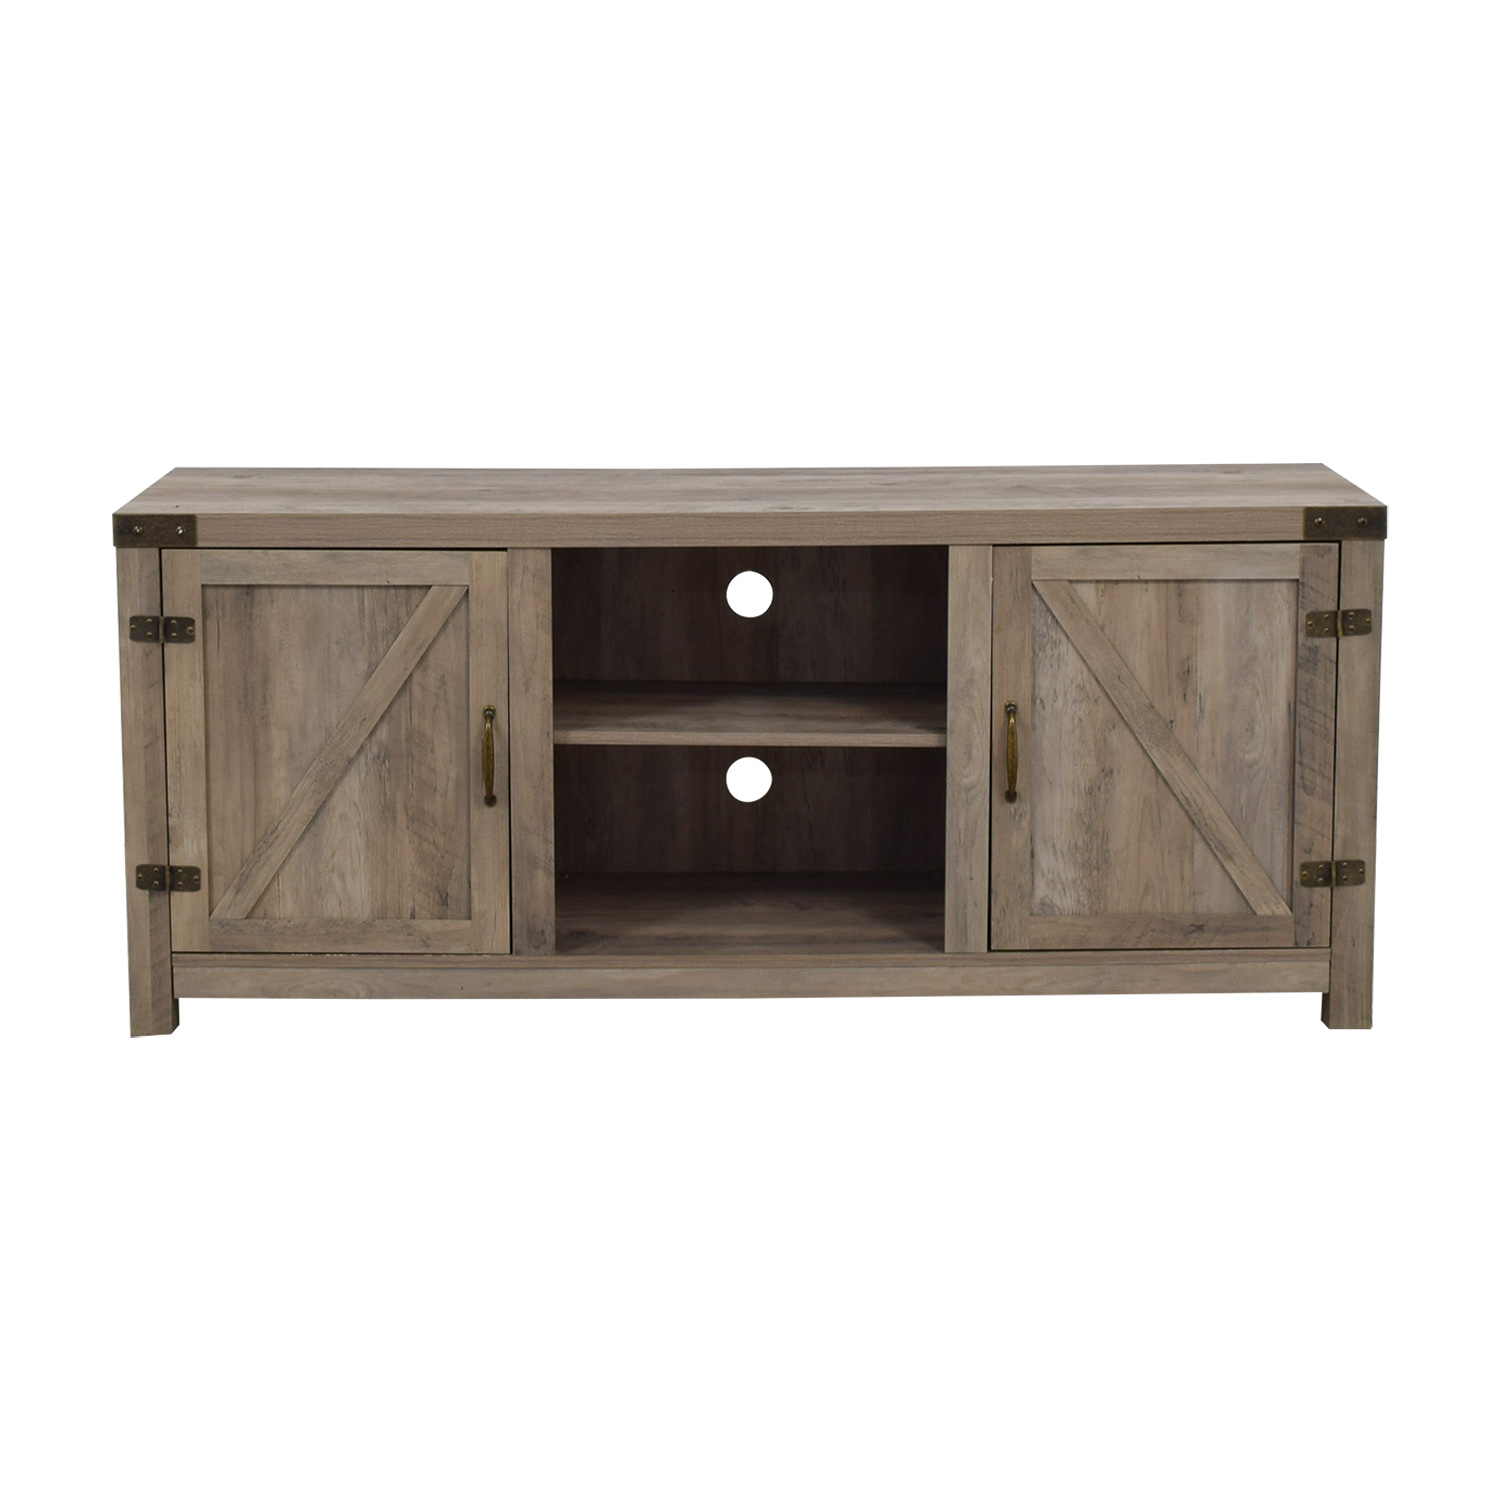 Rustic Wood Media Stand with Cabinets sale